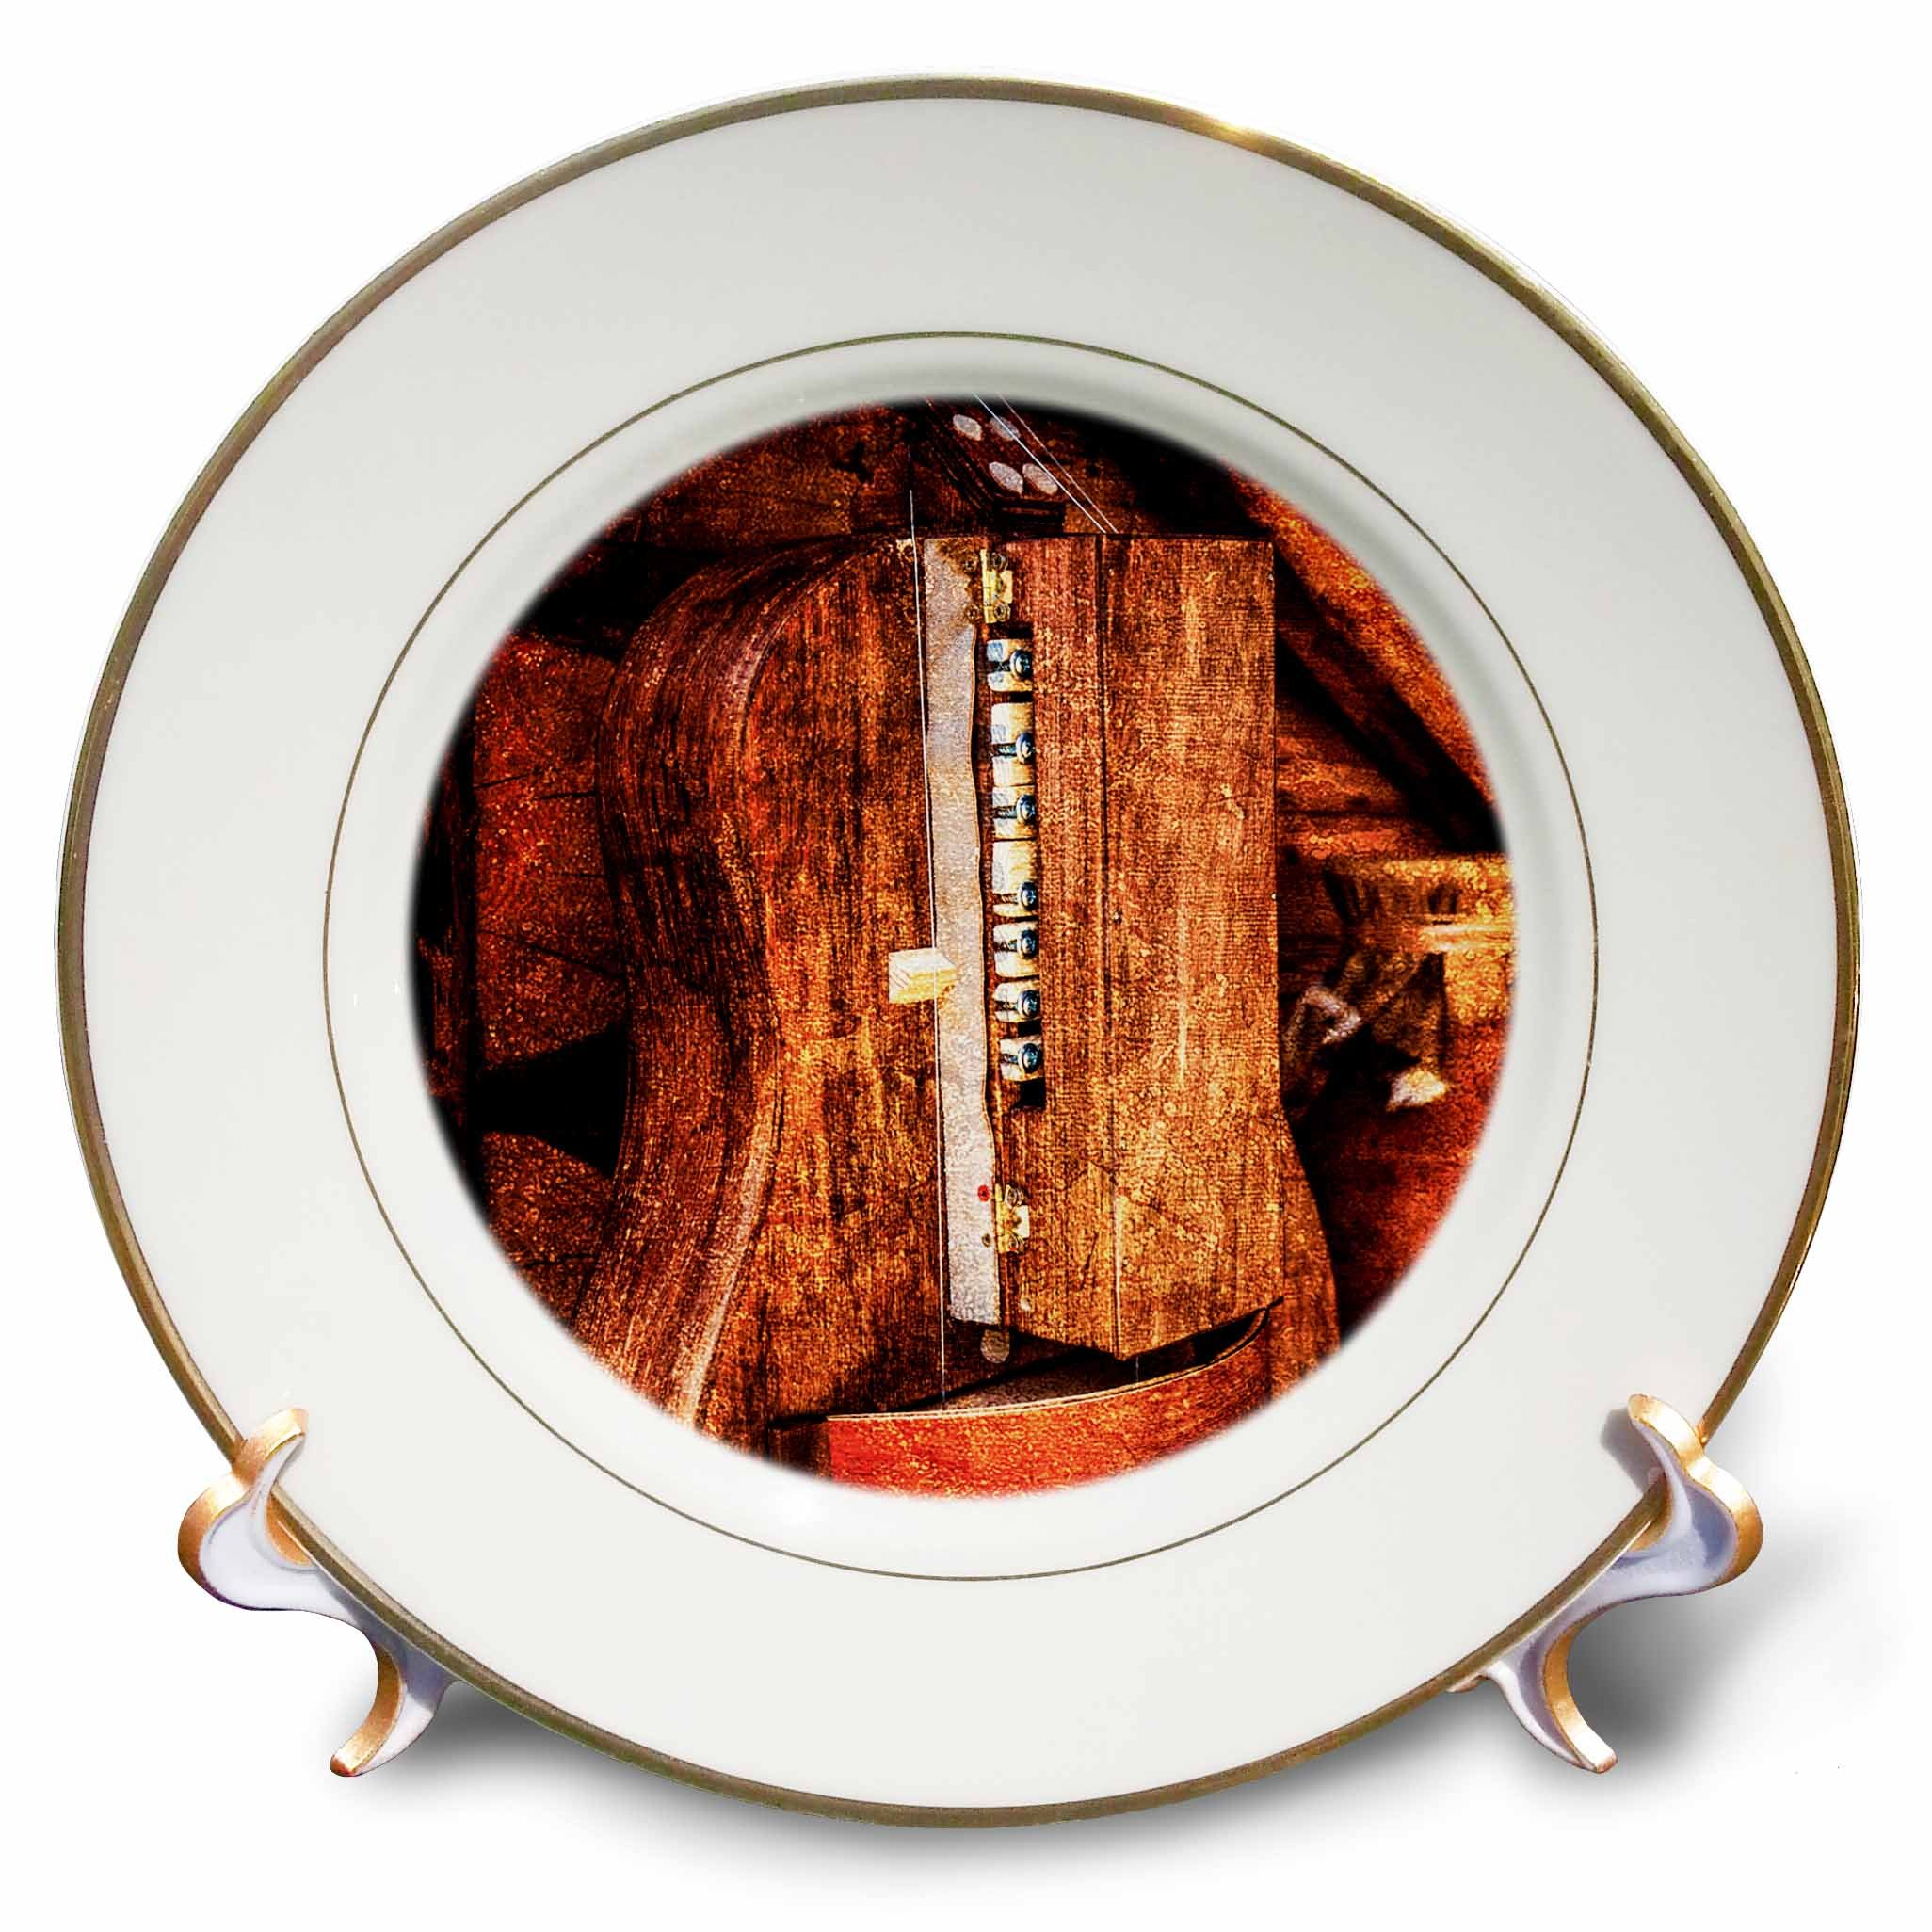 3dRose Alexis Photography - Objects - Golden age technologies - Hurdy-gurdy or lira tedesca. Stylized photo - 8 inch Porcelain Plate (cp_270872_1)